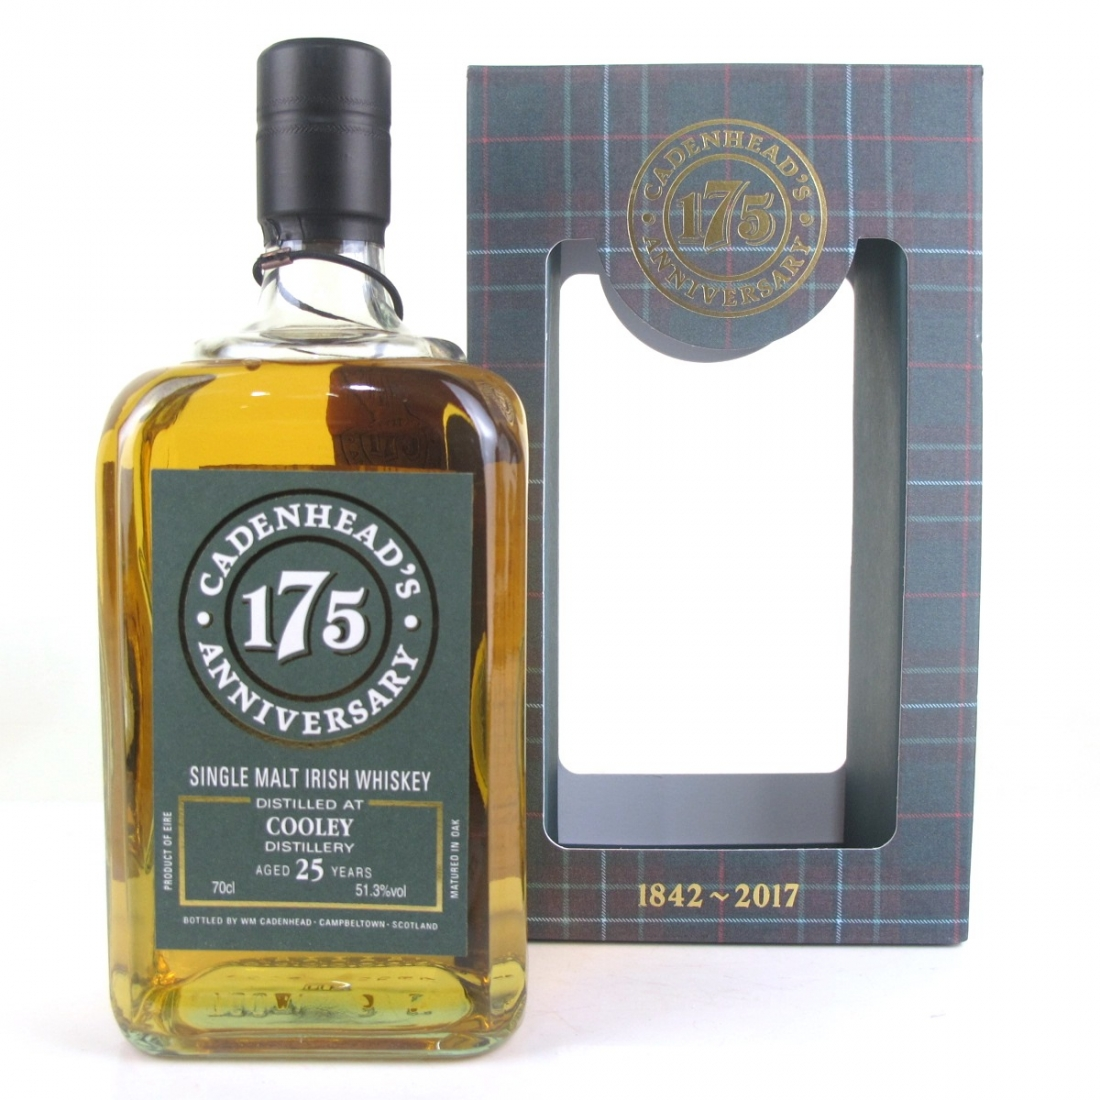 Cooley 1992 Cadenhead's 25 Year Old